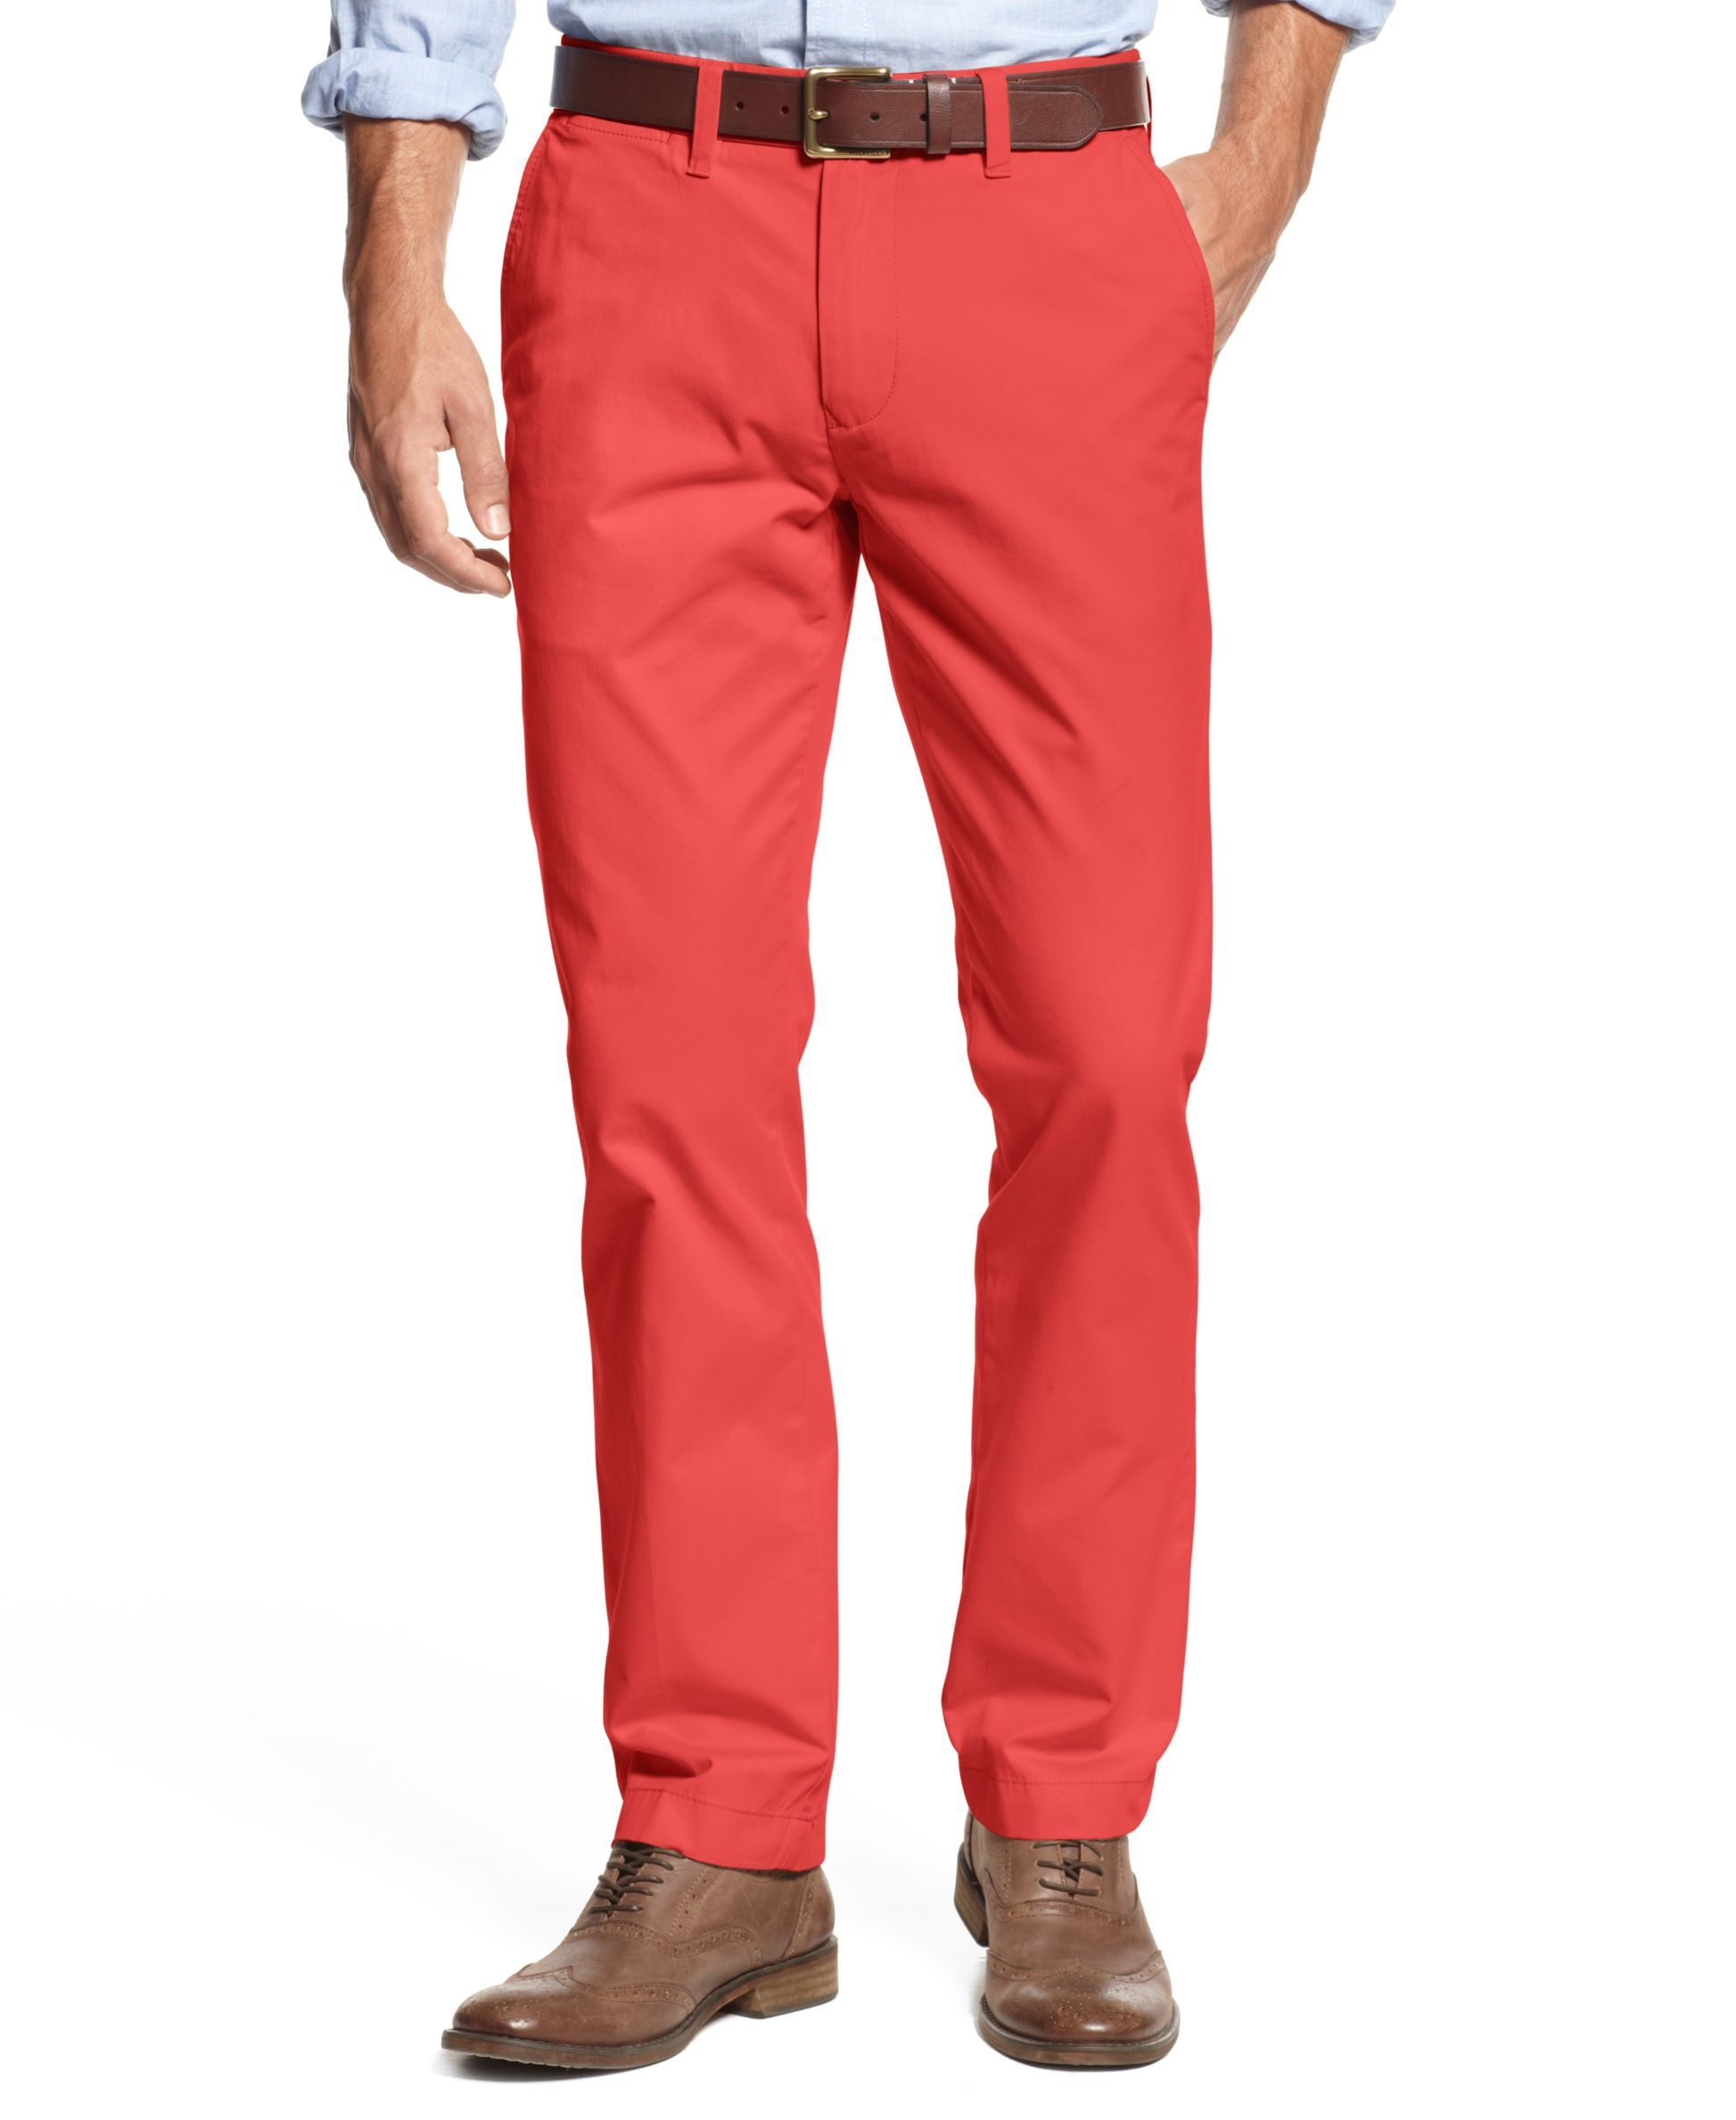 d3afafec Men's TH Flex Stretch Slim-Fit Chino Pants, Created for Macy's ...